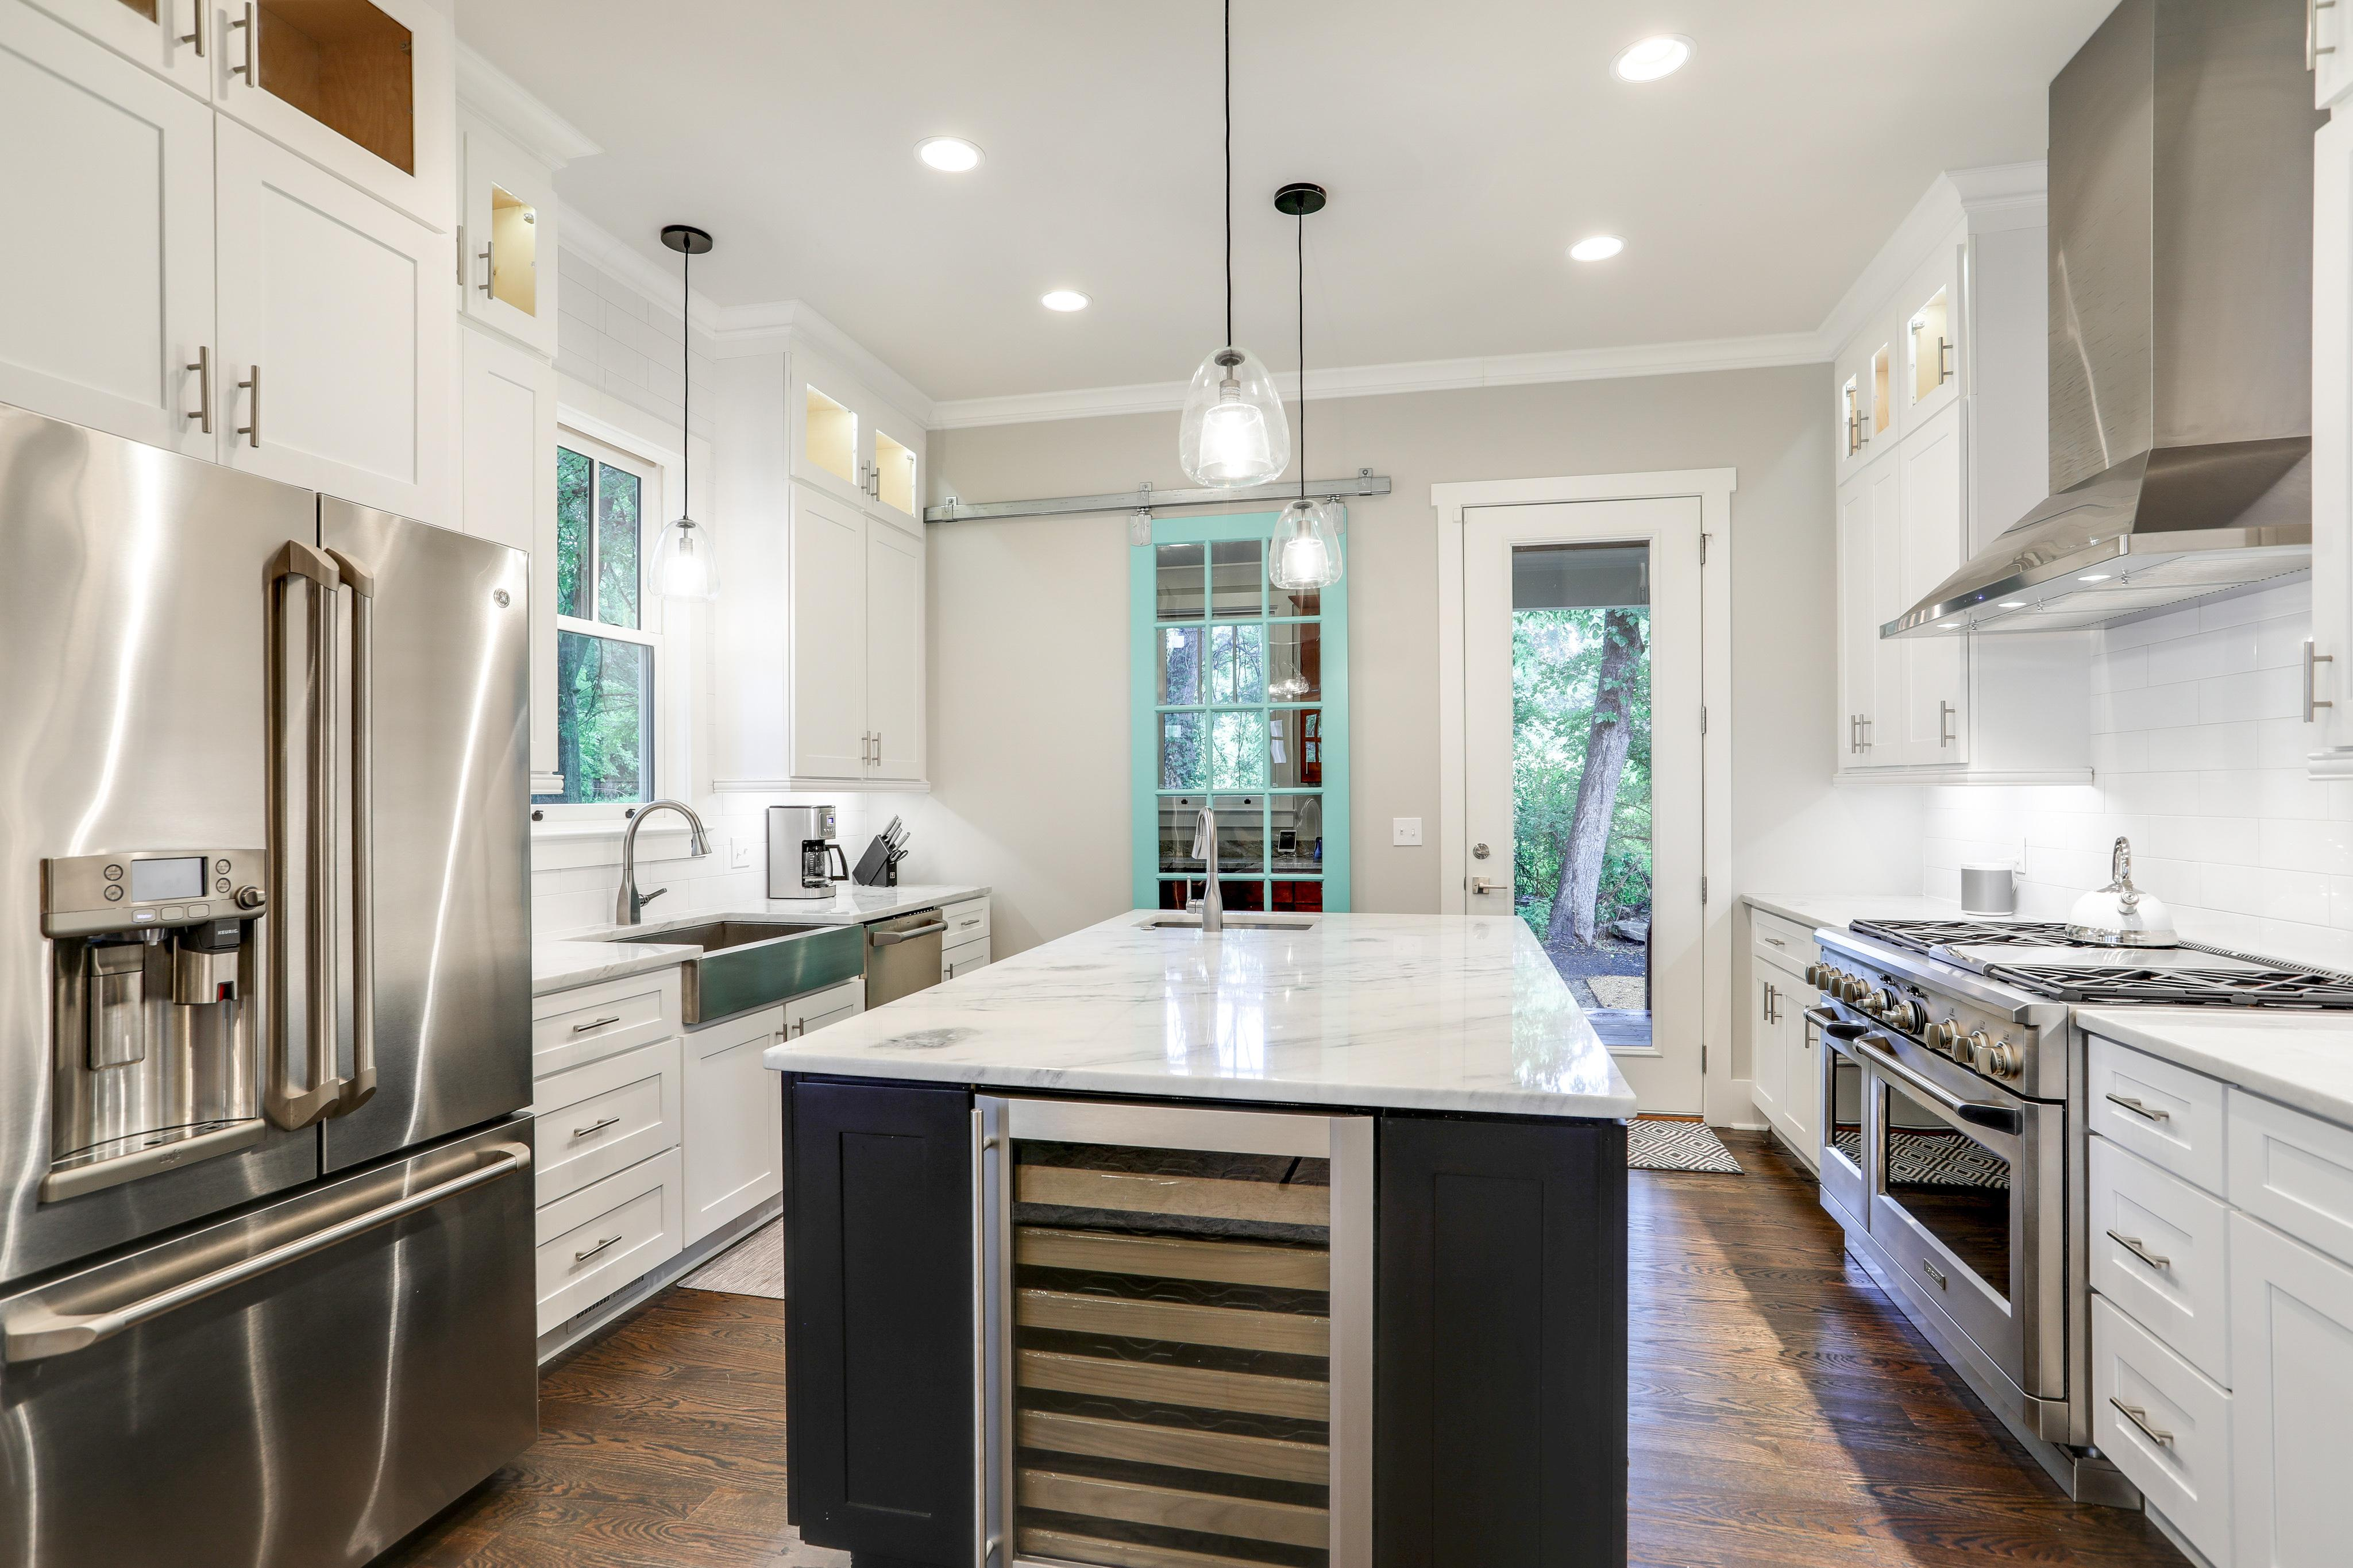 Modern appliances adorn the kitchen.